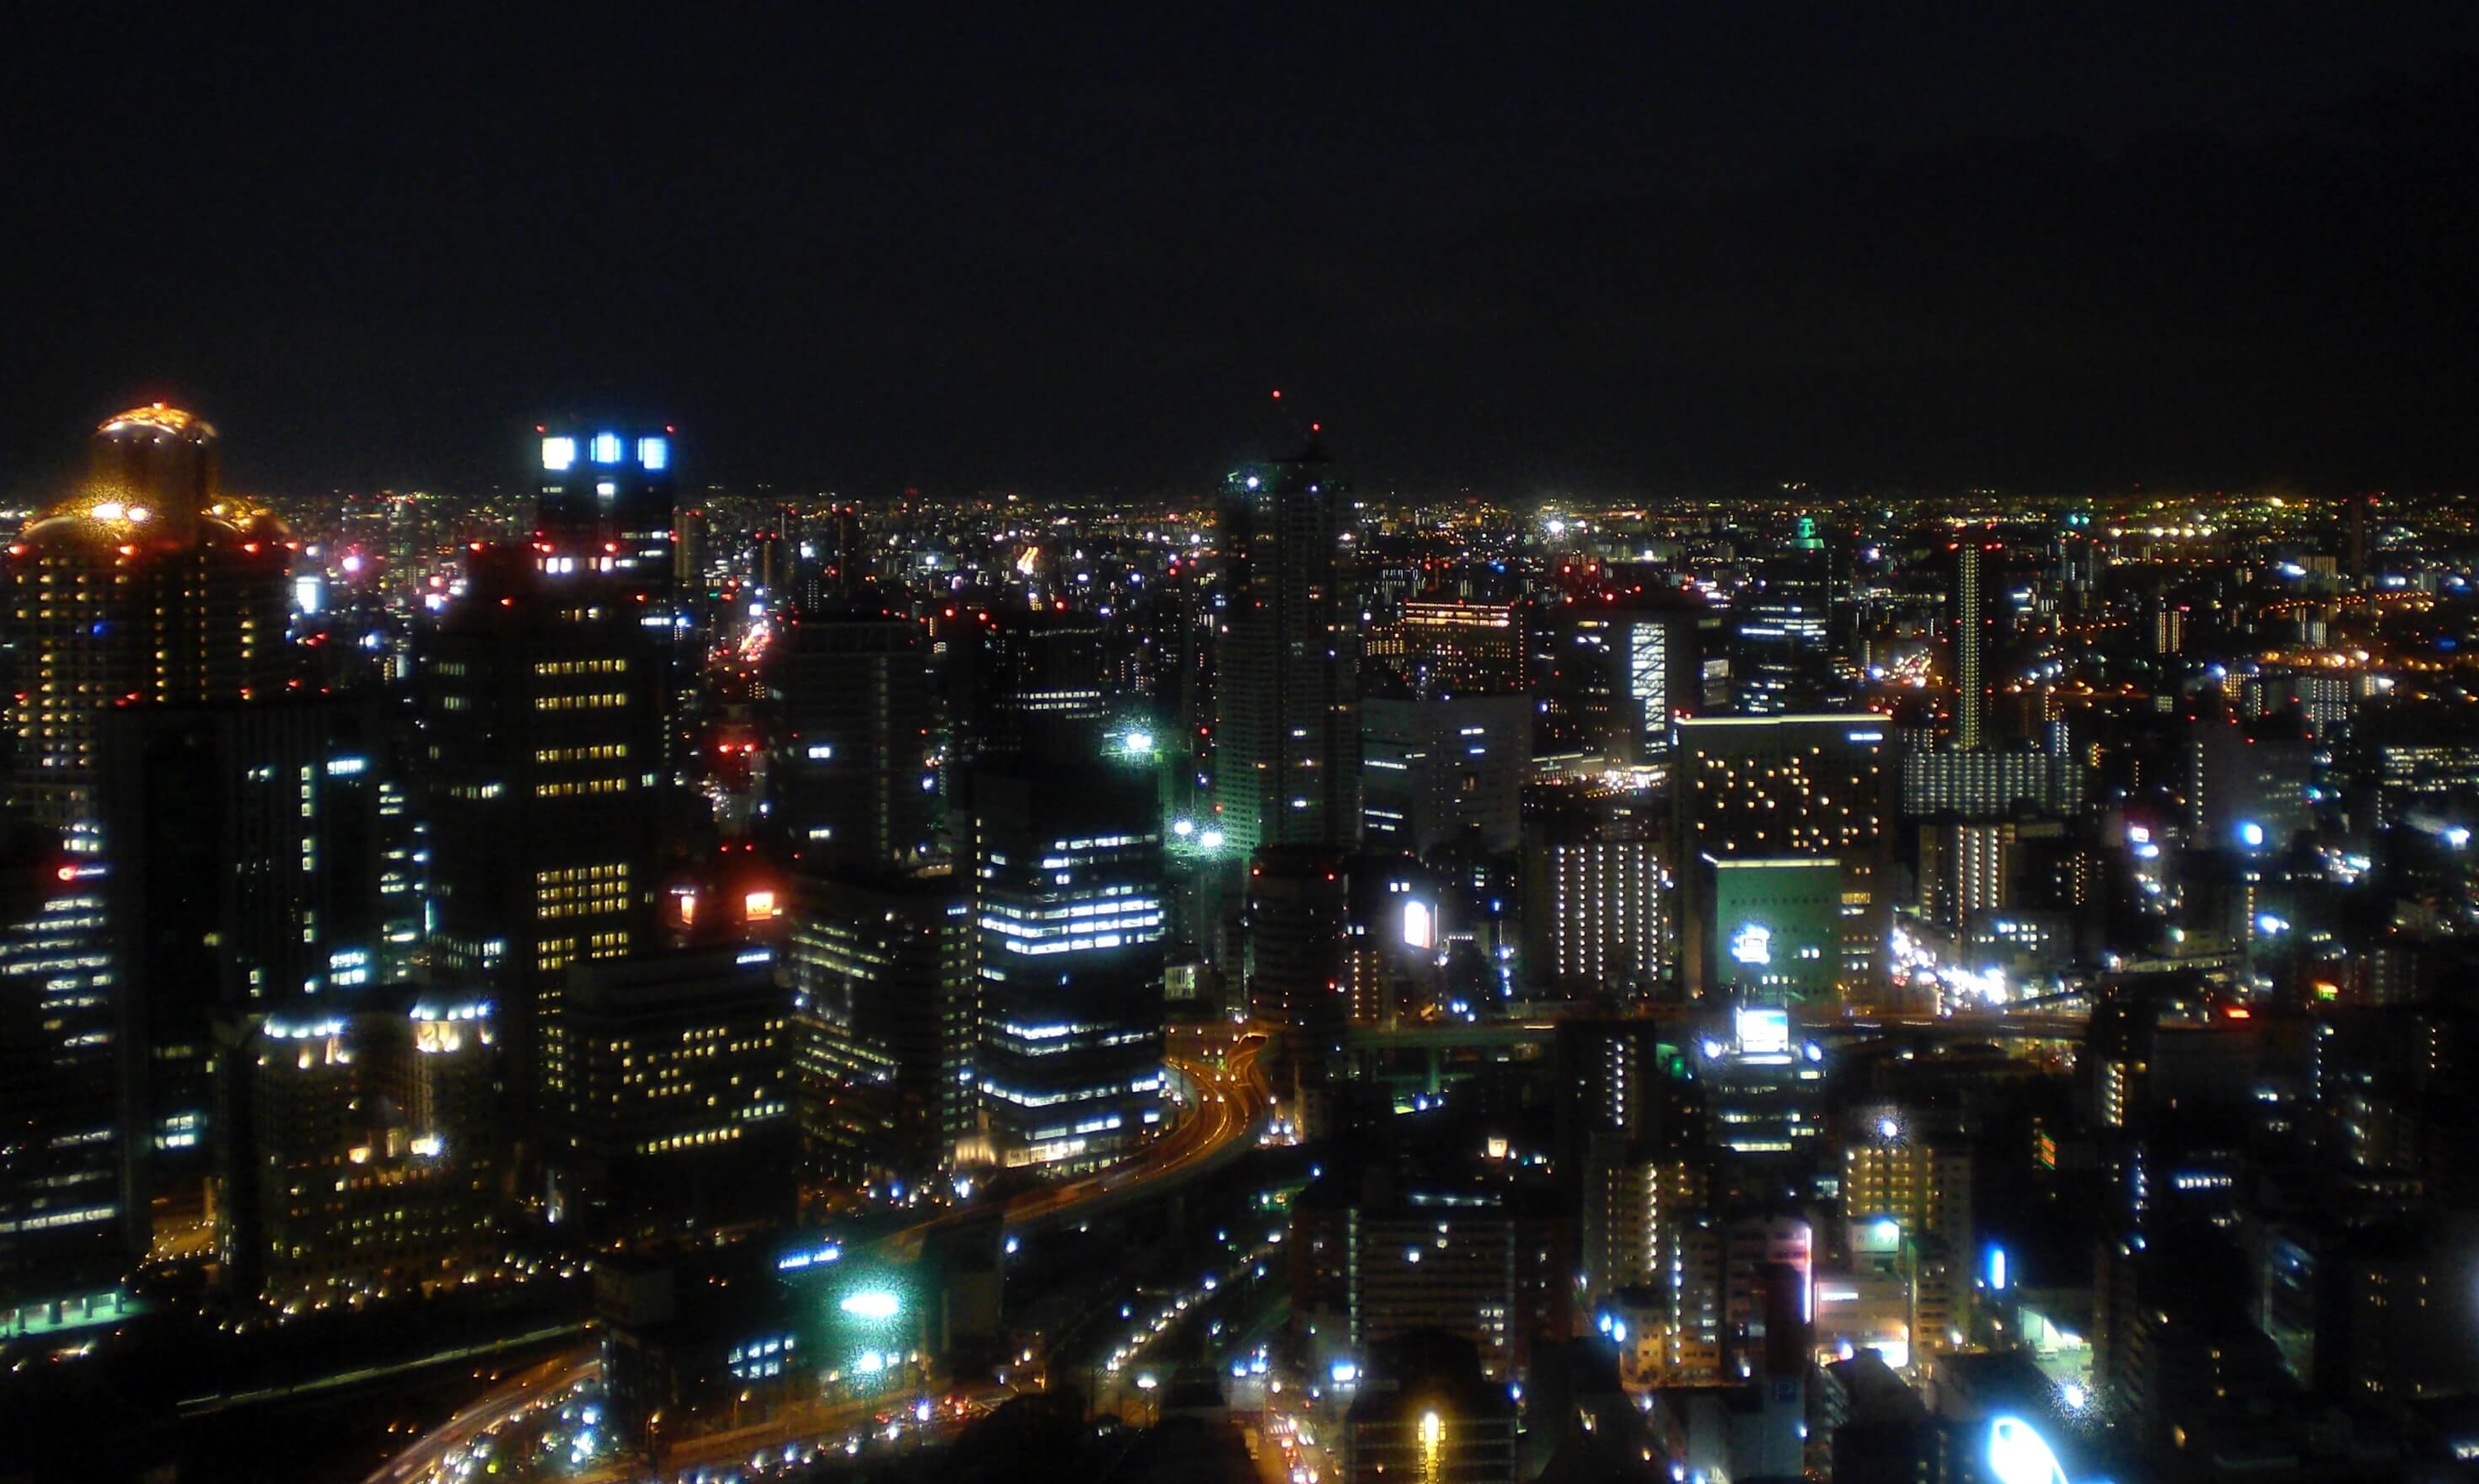 Osaka night view from the Umeda Sky building